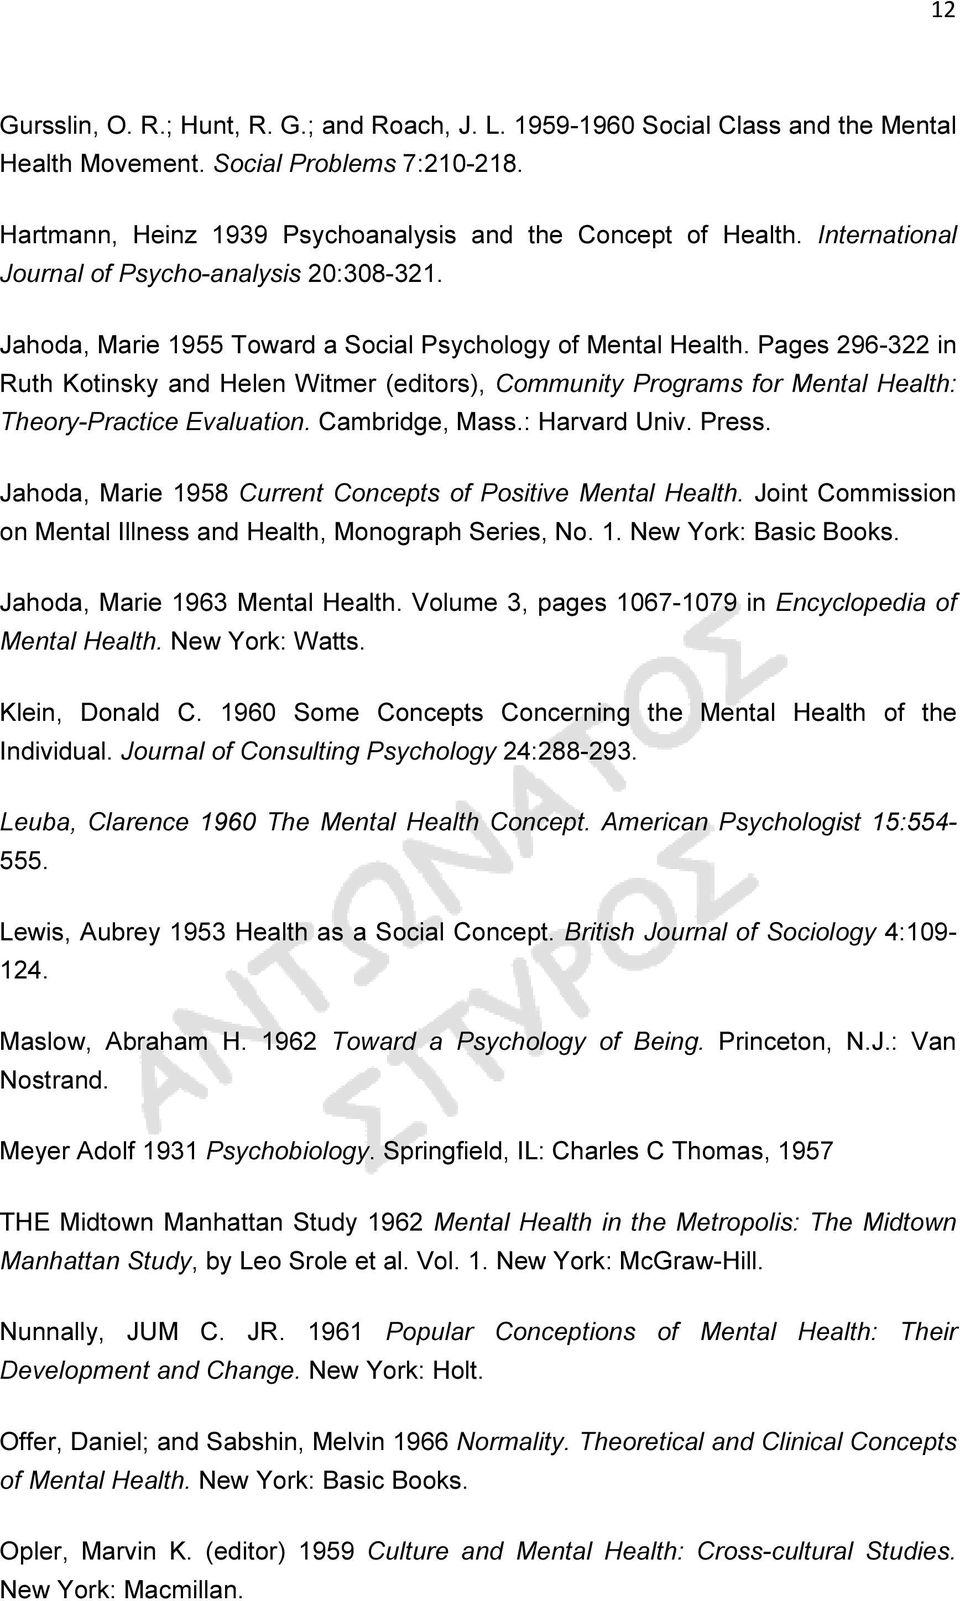 Pages 296-322 in Ruth Kotinsky and Helen Witmer (editors), Community Programs for Mental Health: Theory-Practice Evaluation. Cambridge, Mass.: Harvard Univ. Press.